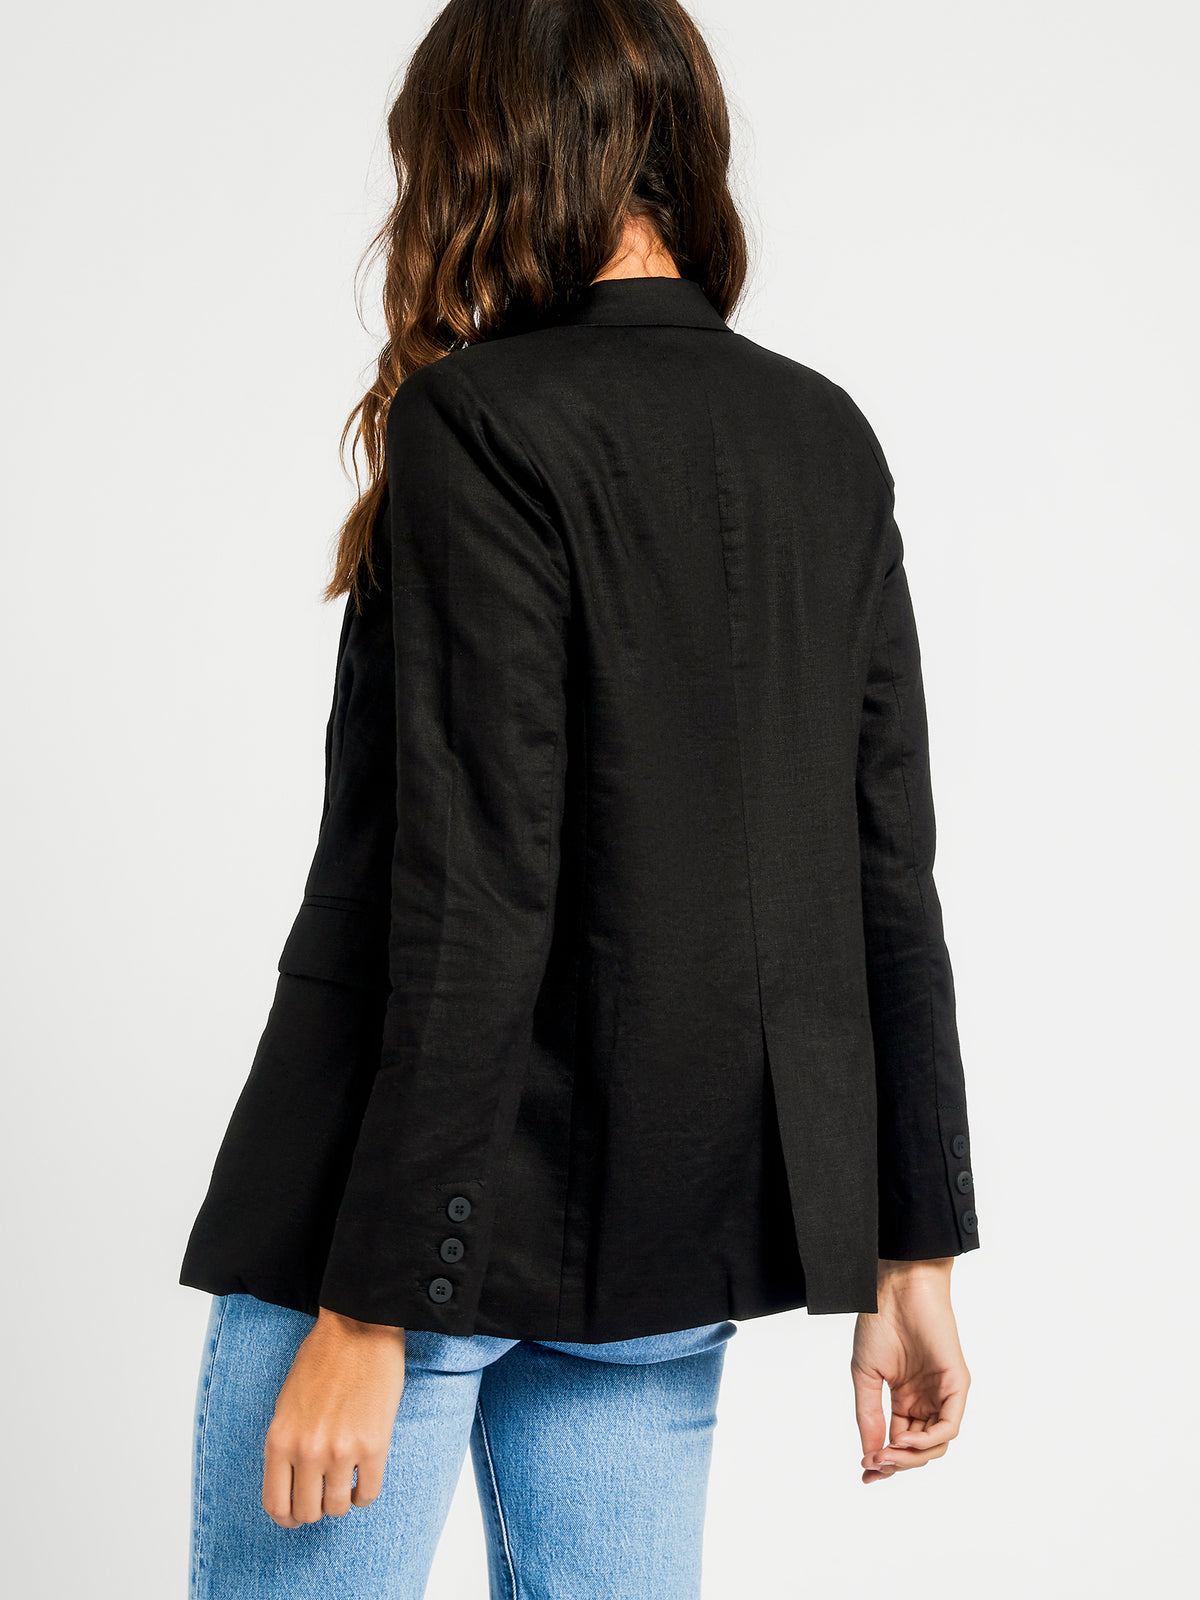 Verona Blazer in Black